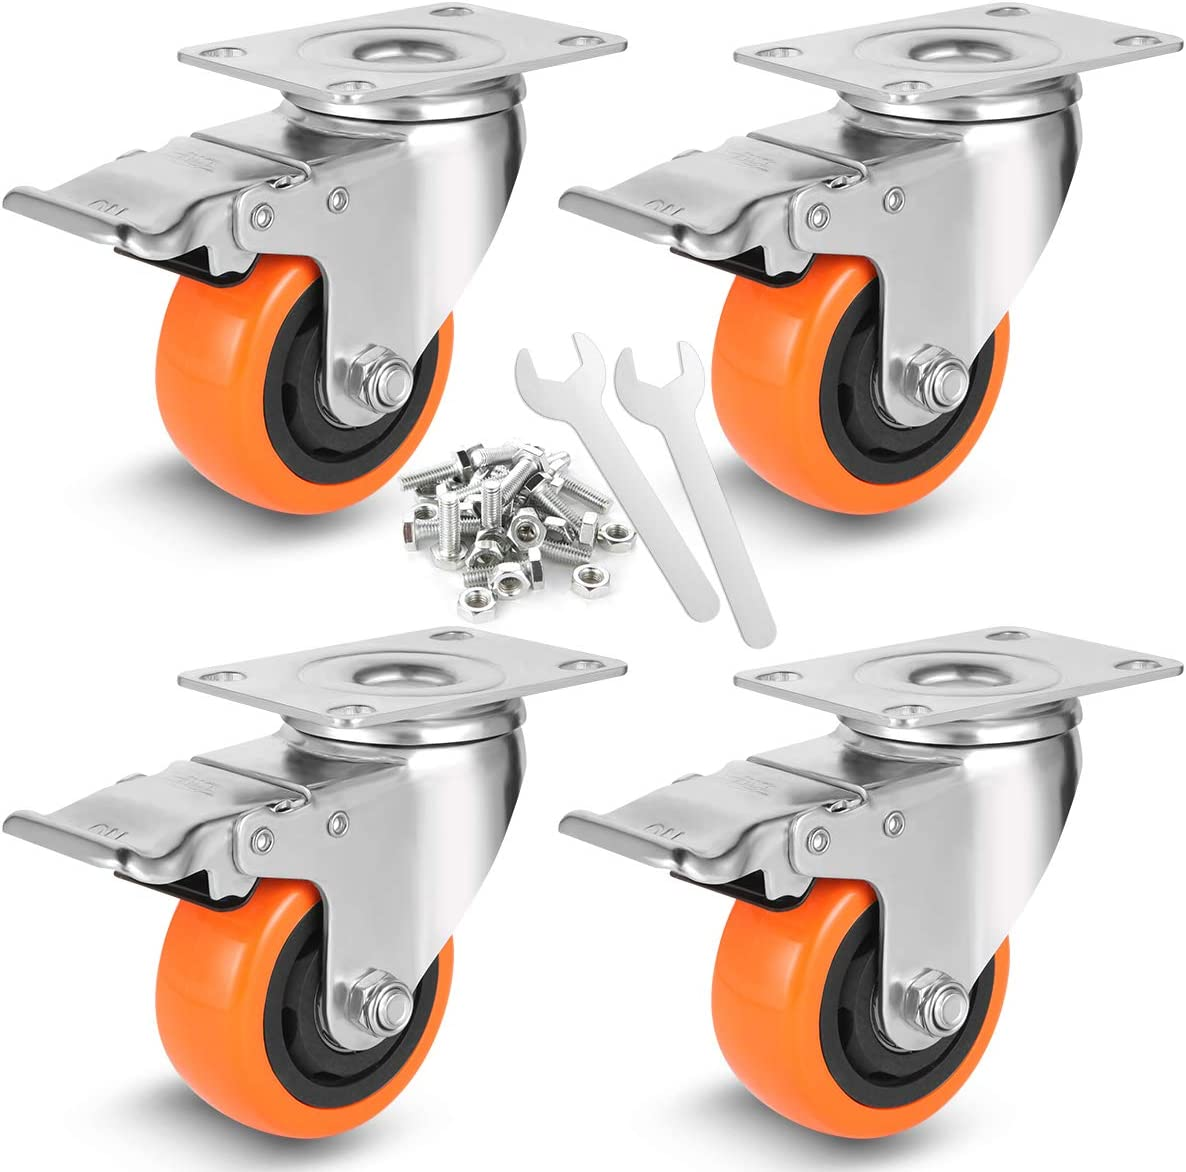 WBD WEIBIDA 3 Inch Swivel Casters Wheels with Safety Dual Locking, Heavy Duty of 1000lbs,Premium Polyurethane Wheels for Furniture and Workbench, Set of 4((Free Screws and Spanner)